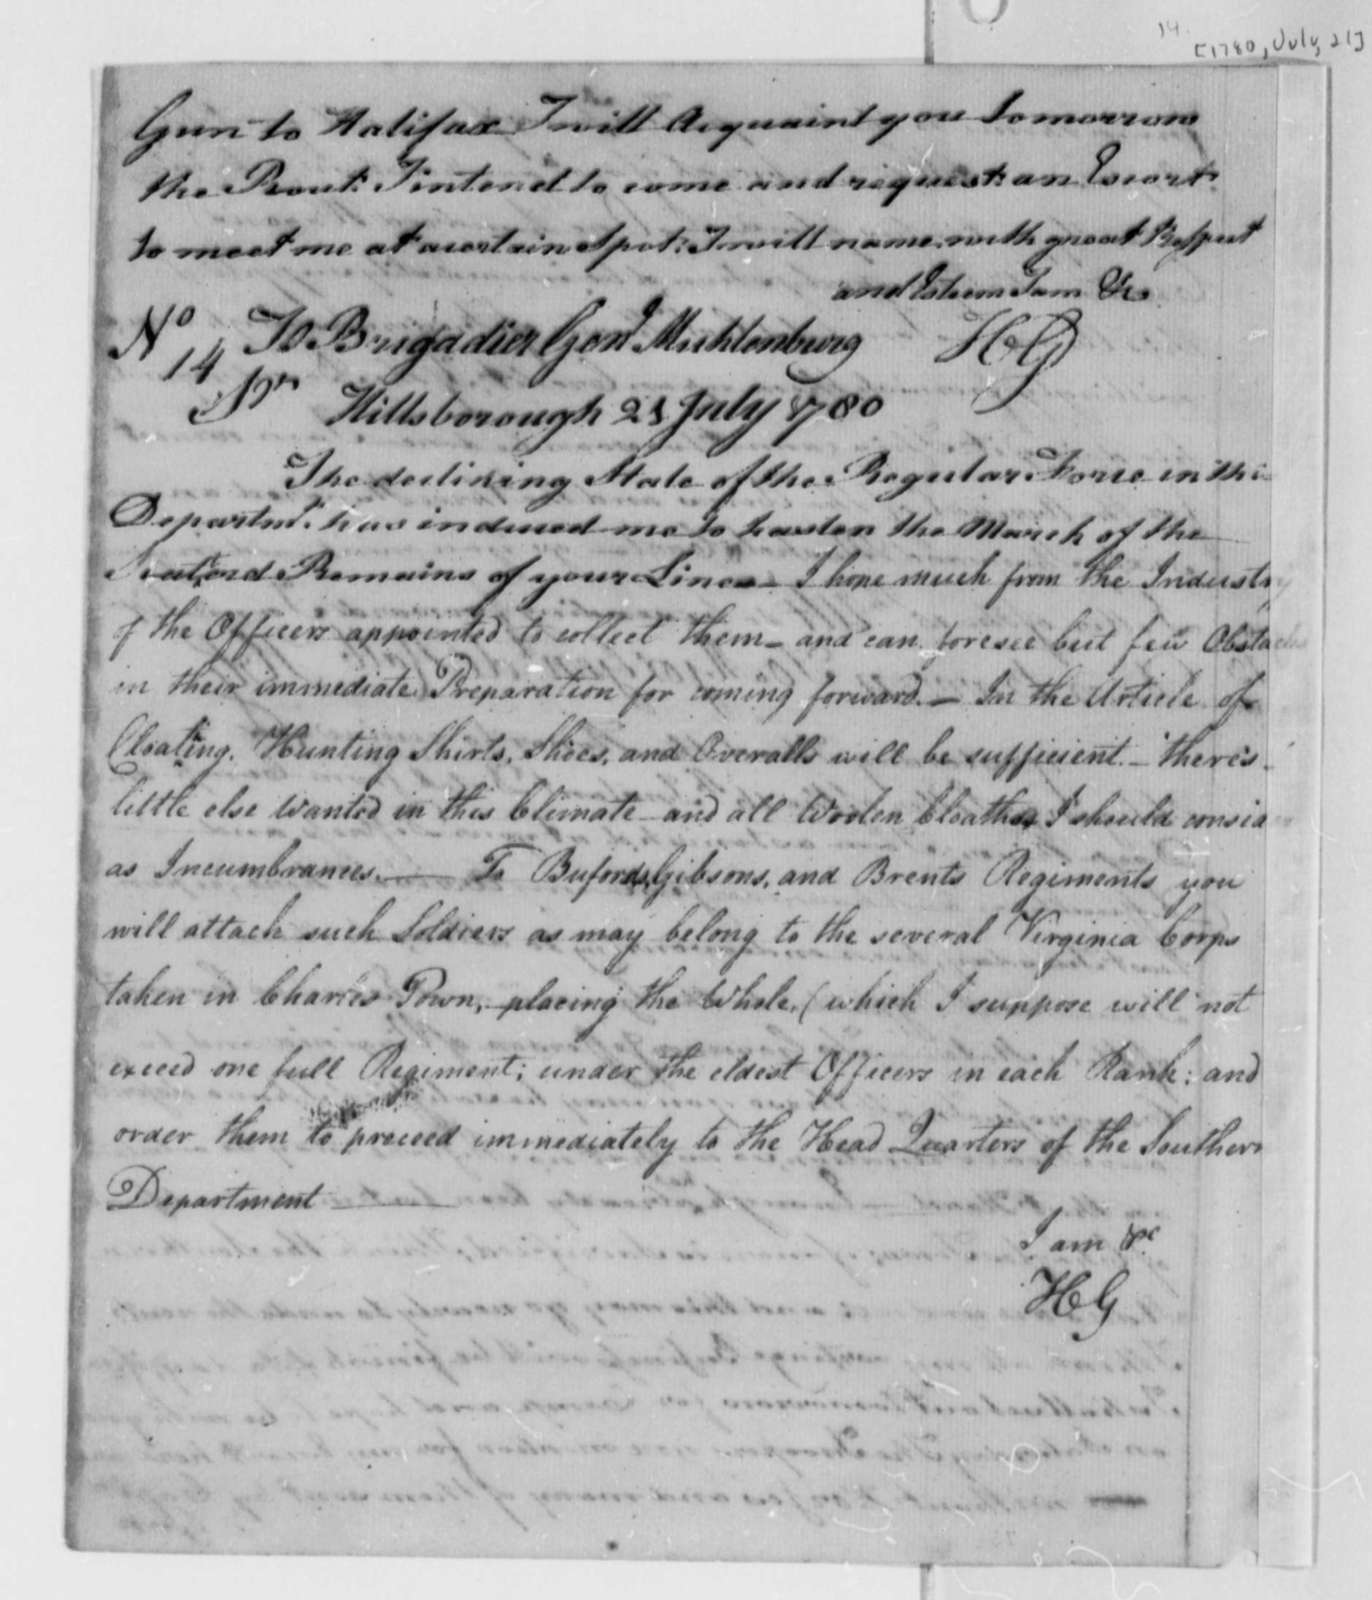 Horatio Gates to John P. G. Muhlenberg, July 21, 1780